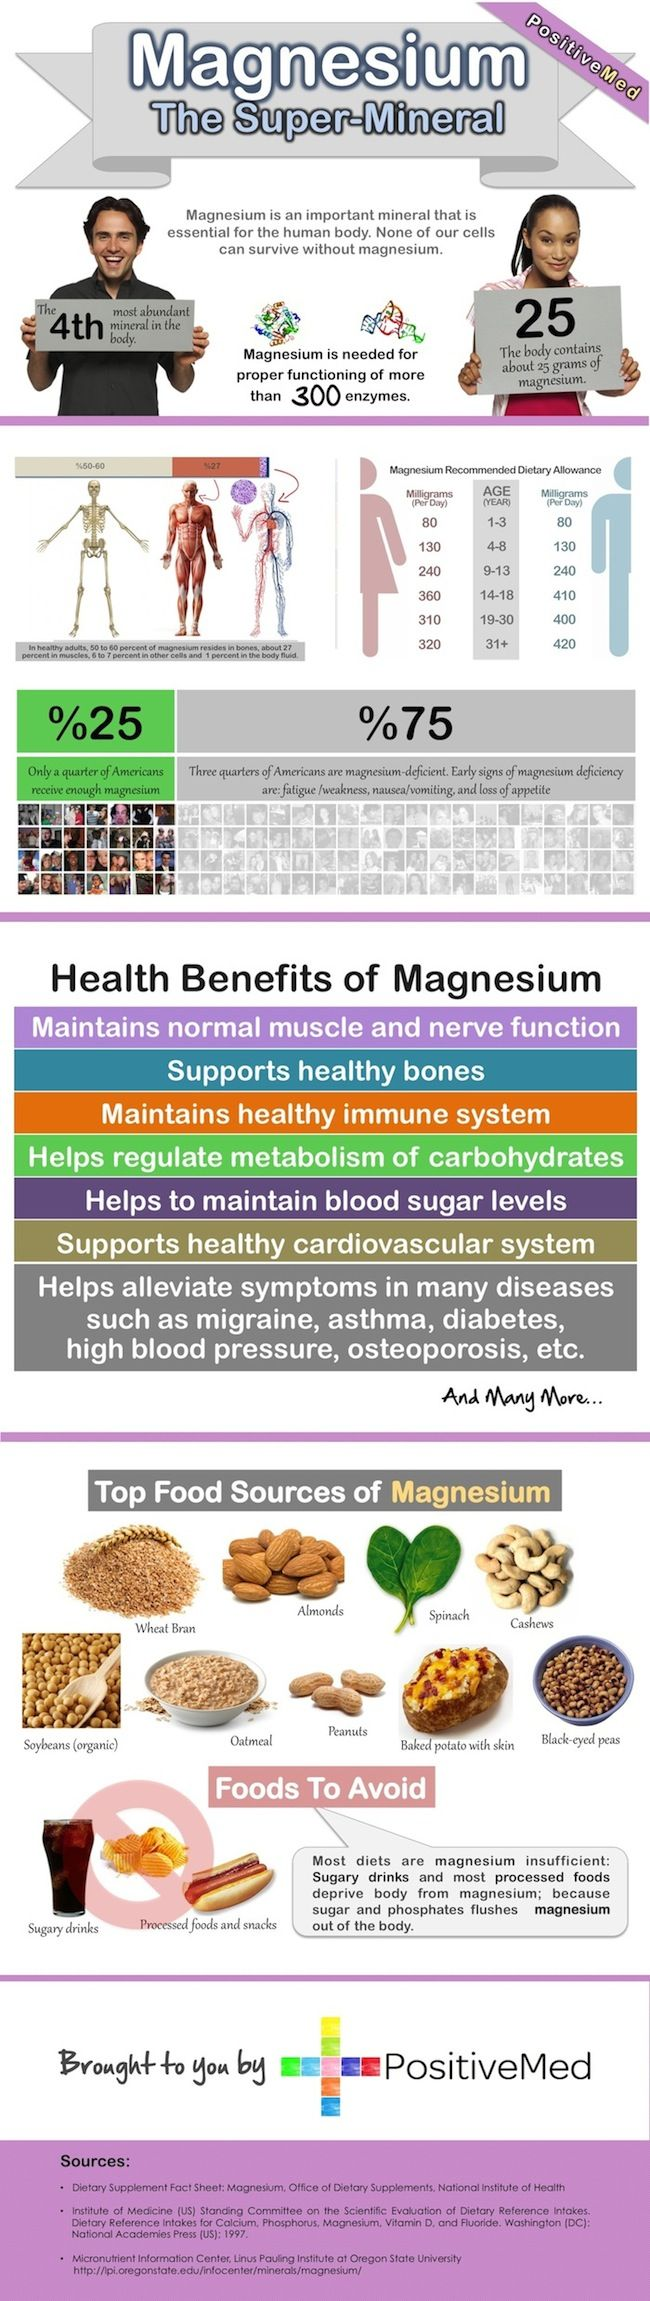 #magnesium the super mineral - we all need it yet 75% of us are deficient.